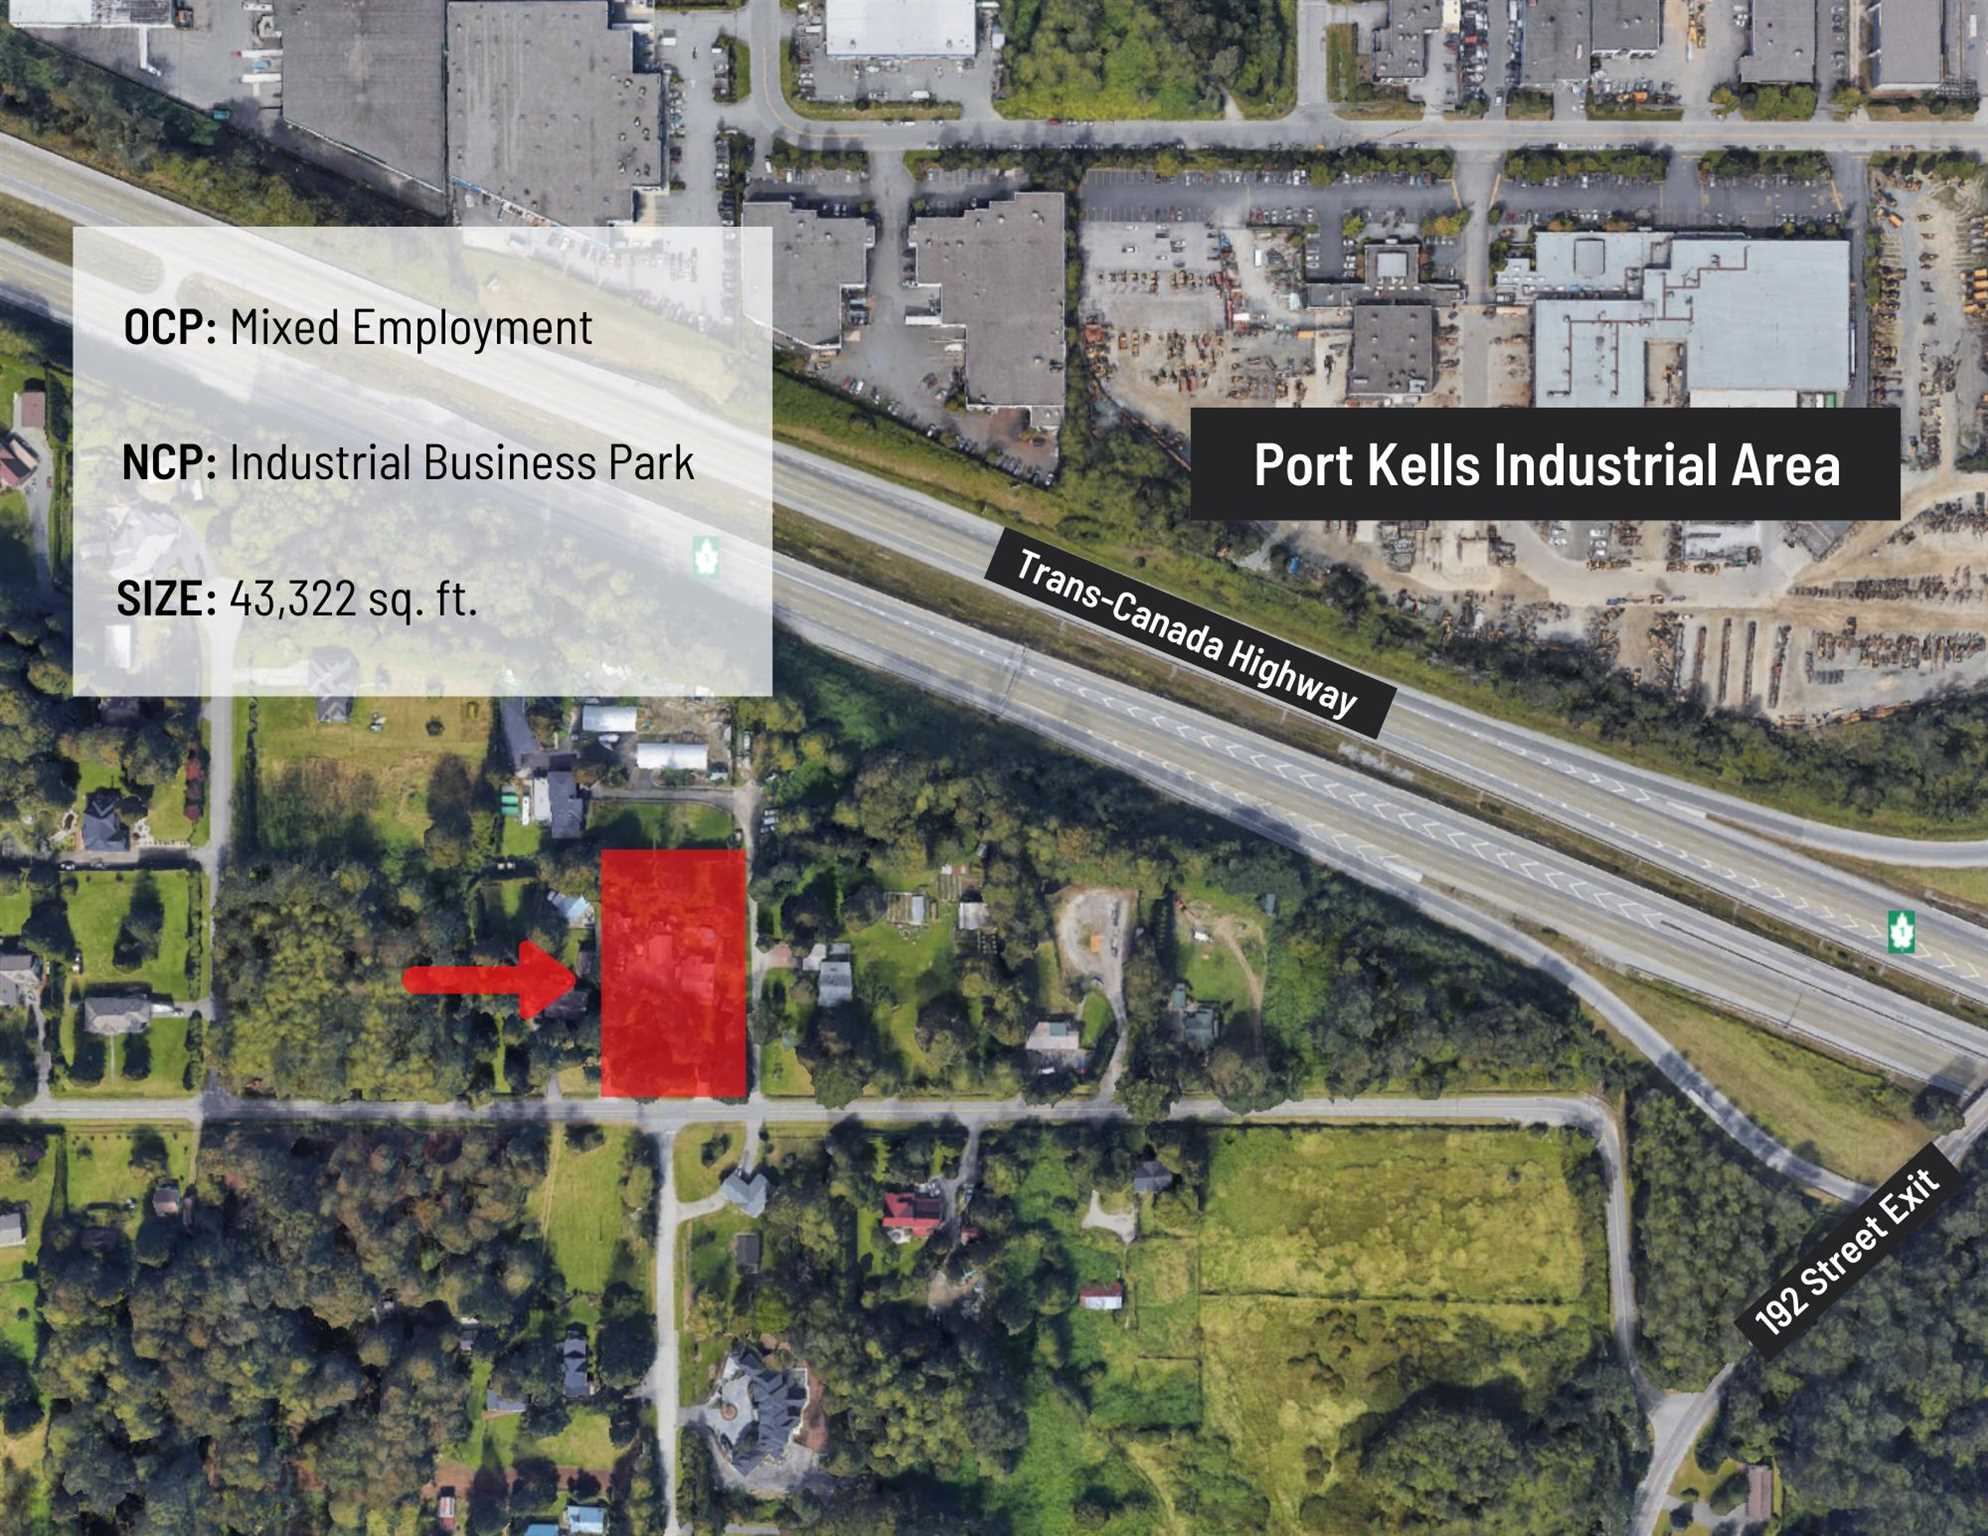 INVESTOR & DEVELOPERS ALERT! Prime holding property in the Anniedale Tynehead NCP designated Industrial Business Park which allows for mixed use office and warehouse. Minutes to Trans-Canada Highway, Golden Ears Way & the Port Kells Industrial Park. A great investment to hold and develop in the future.